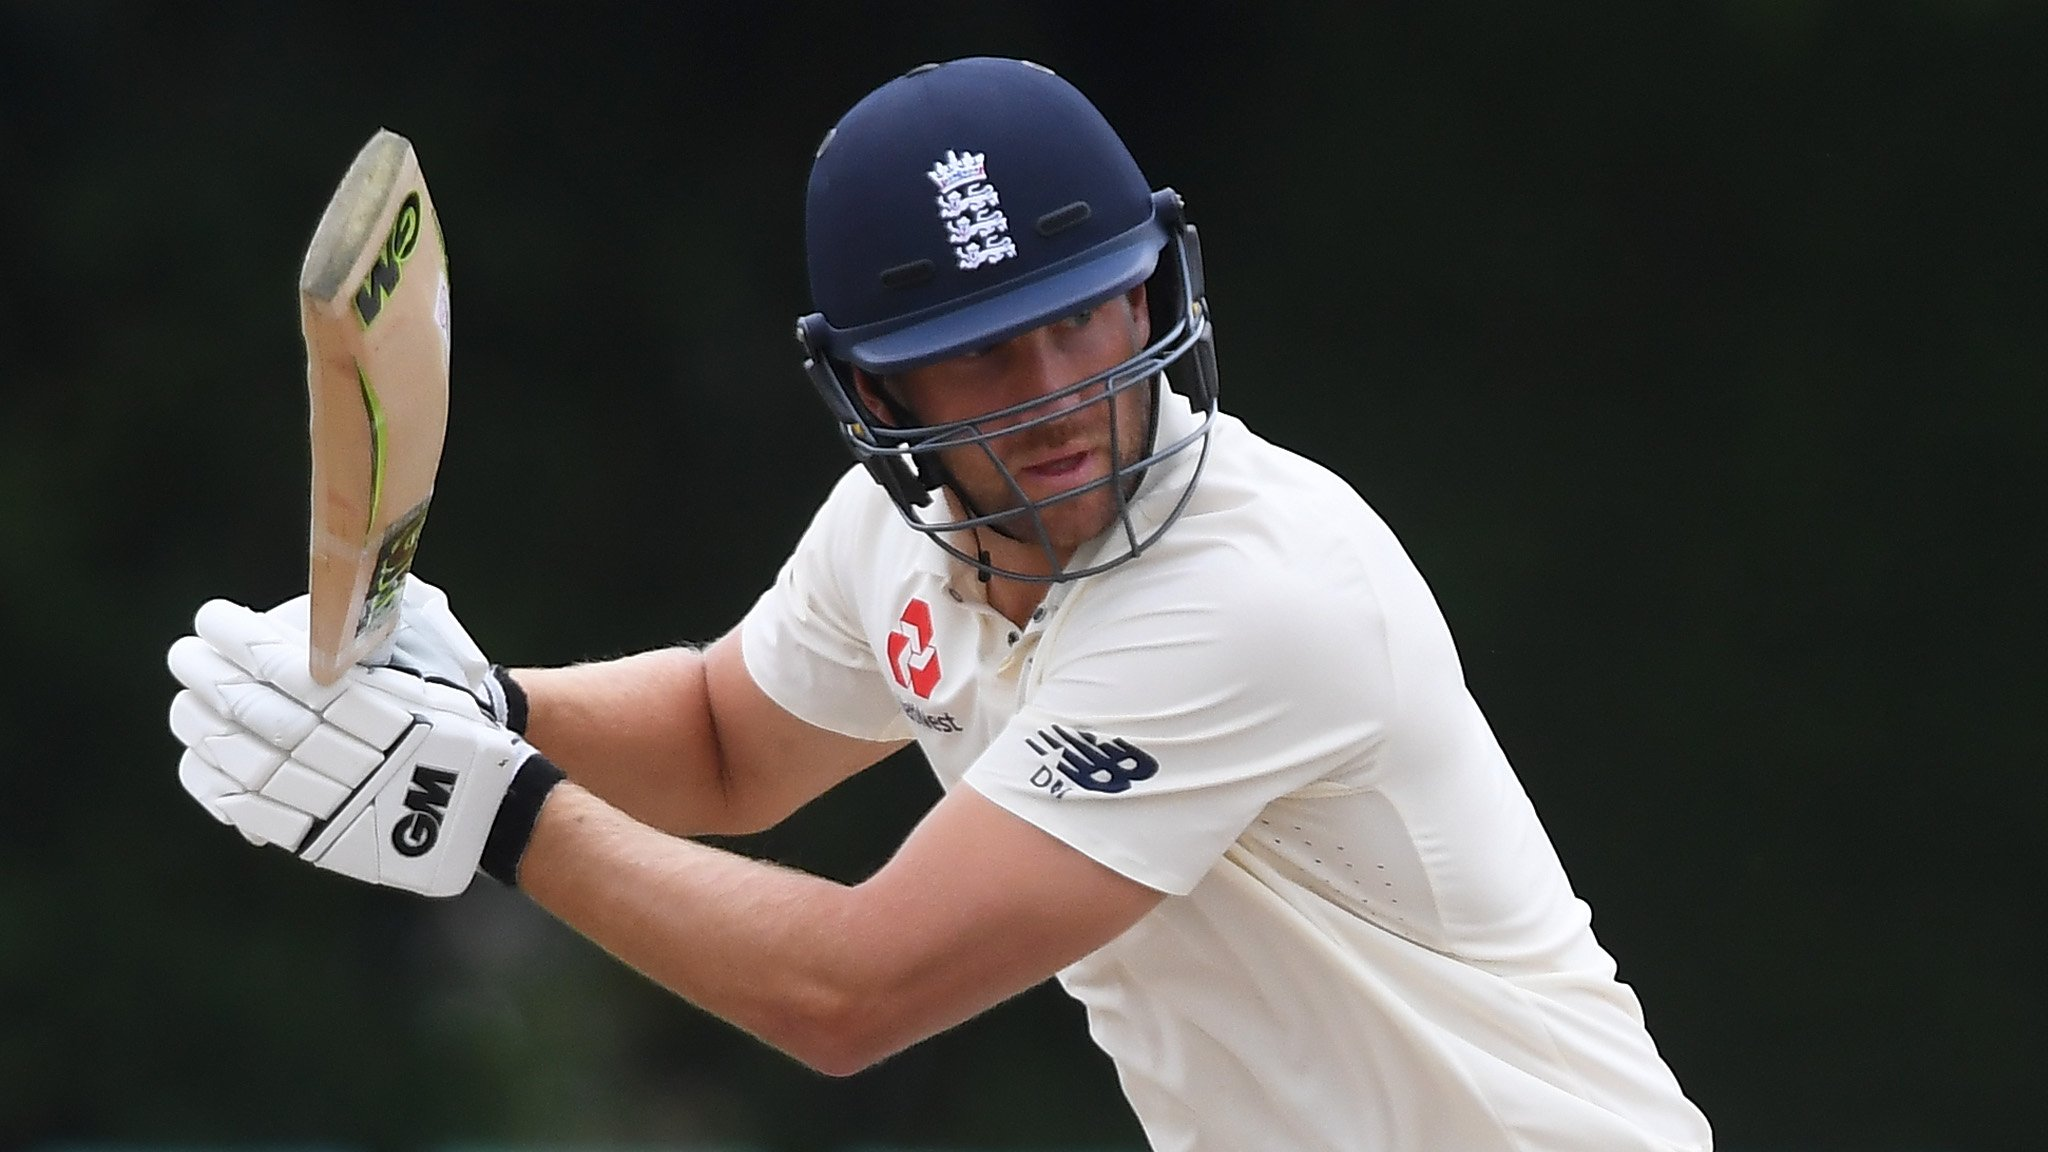 Dawid Malan: England batsman extends Middlesex deal until 2021